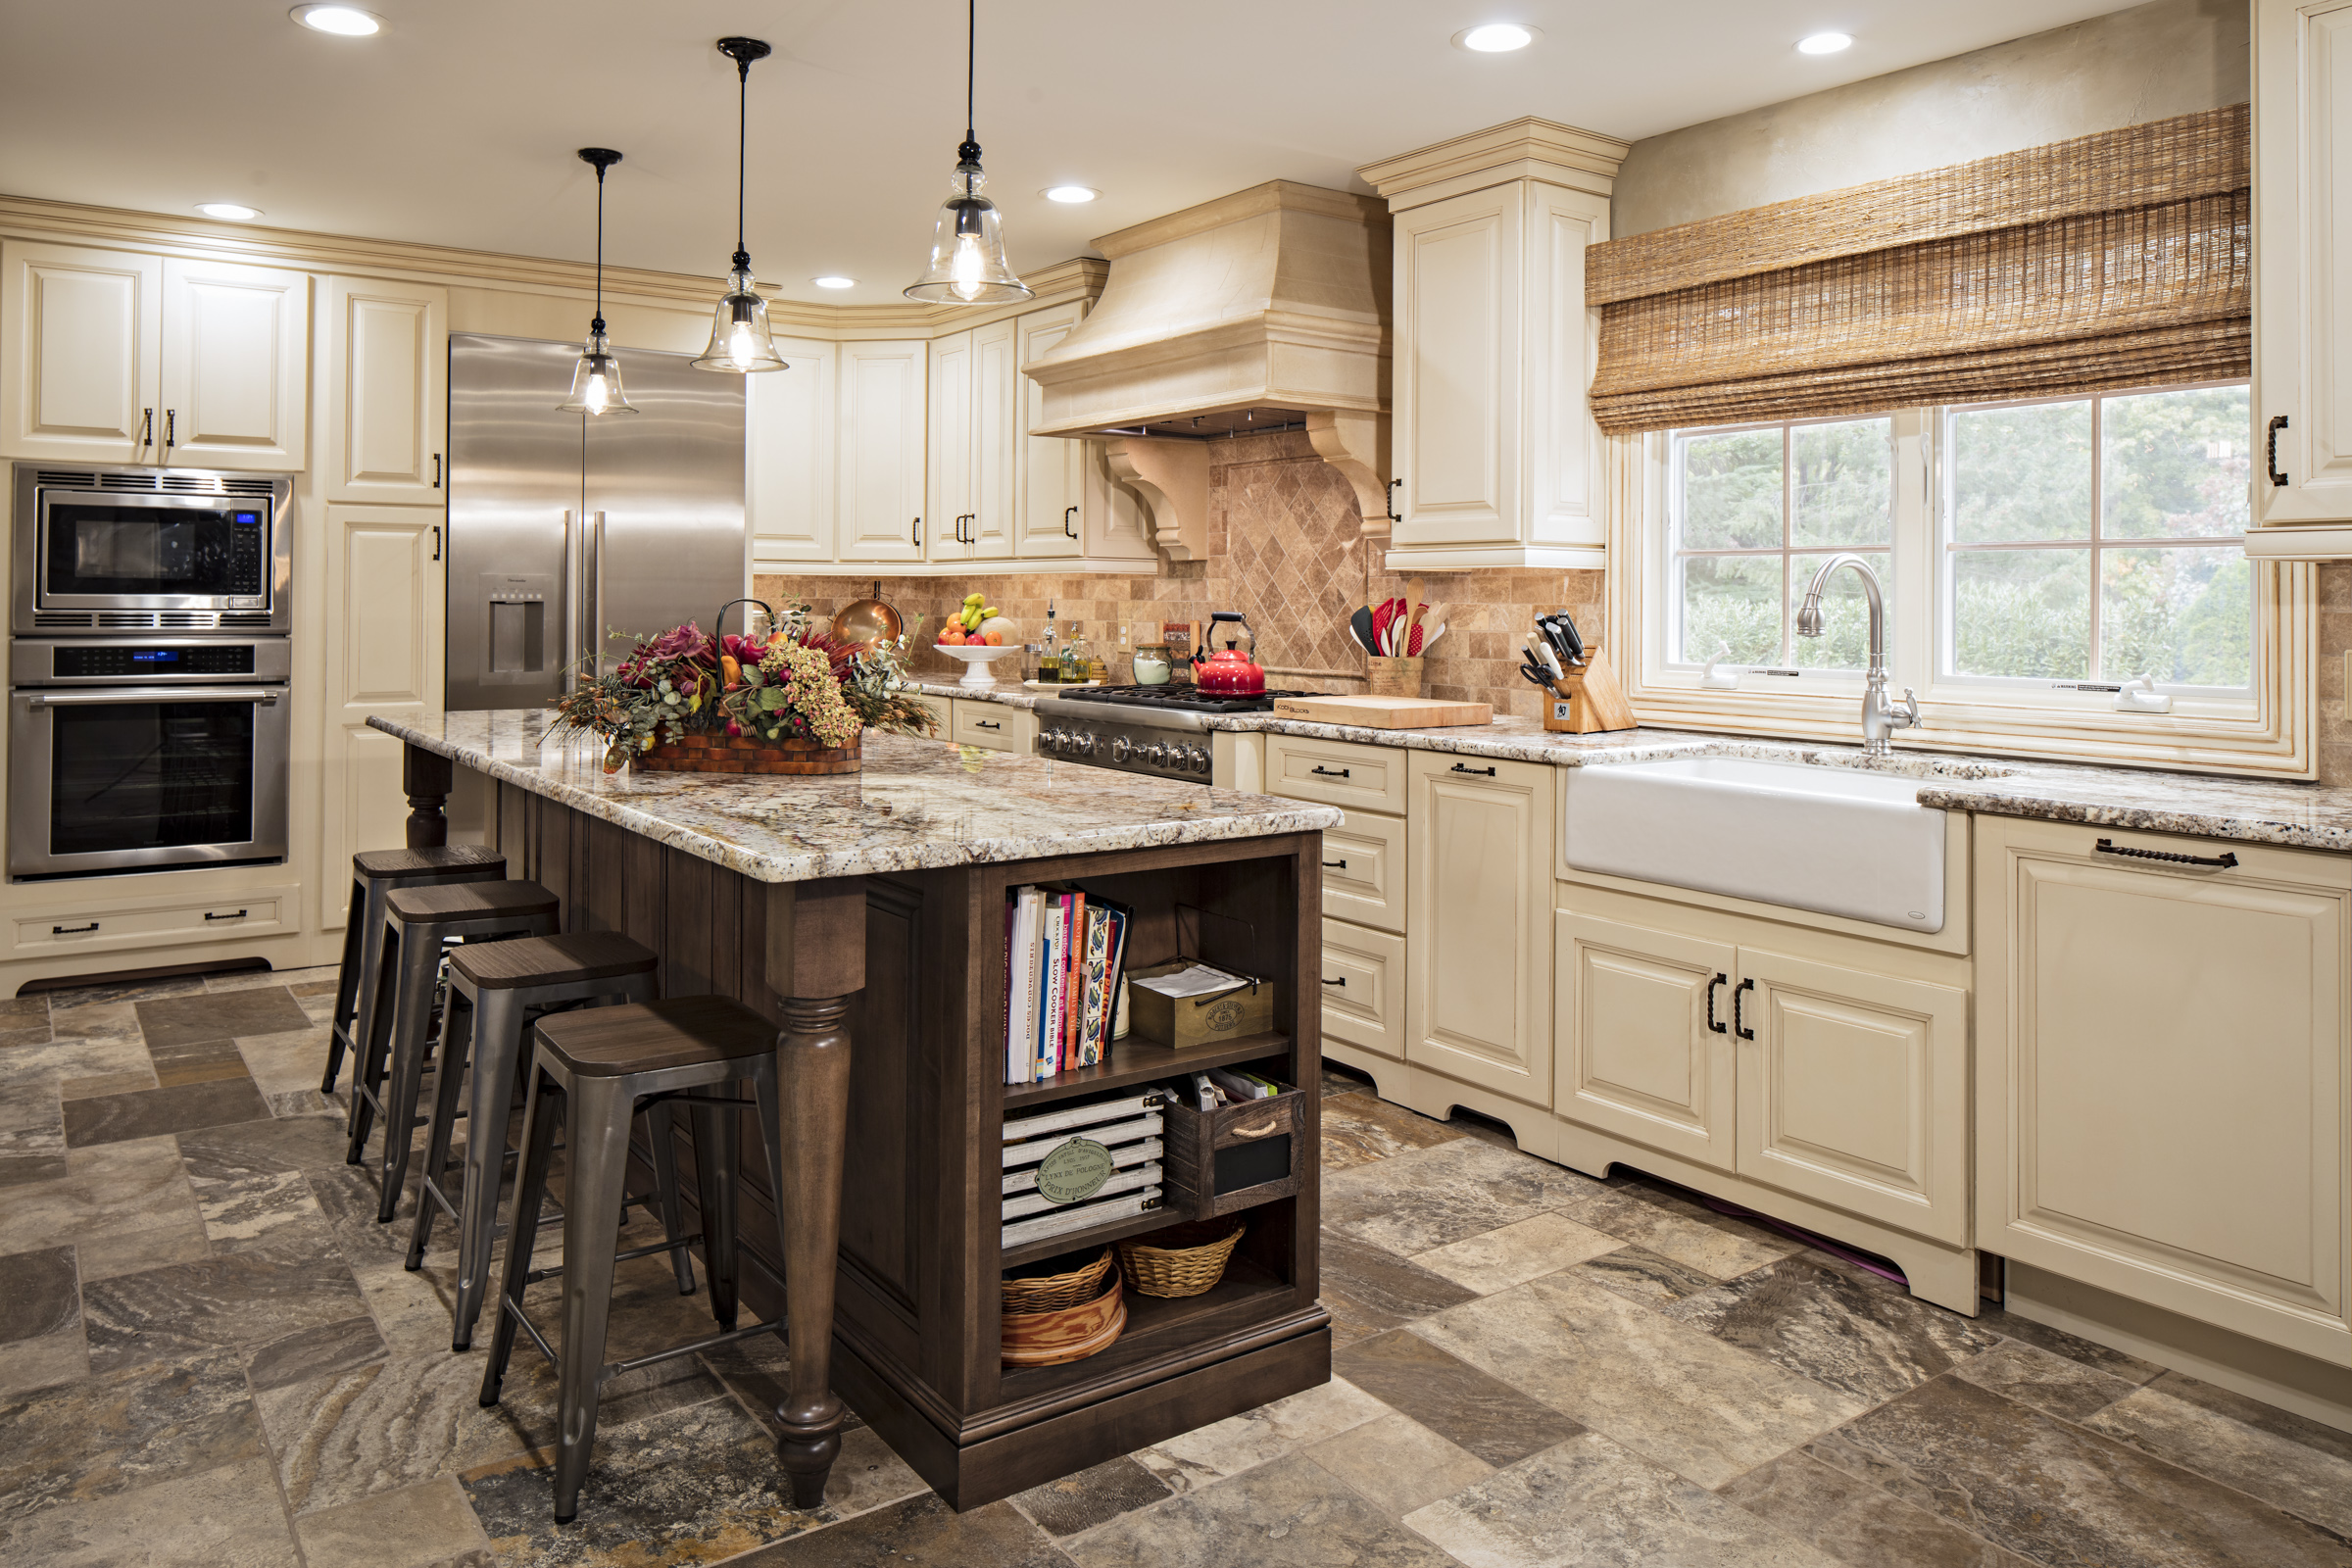 old world kitchen t k contractors on kitchen remodeling and design ideas hgtv id=94513